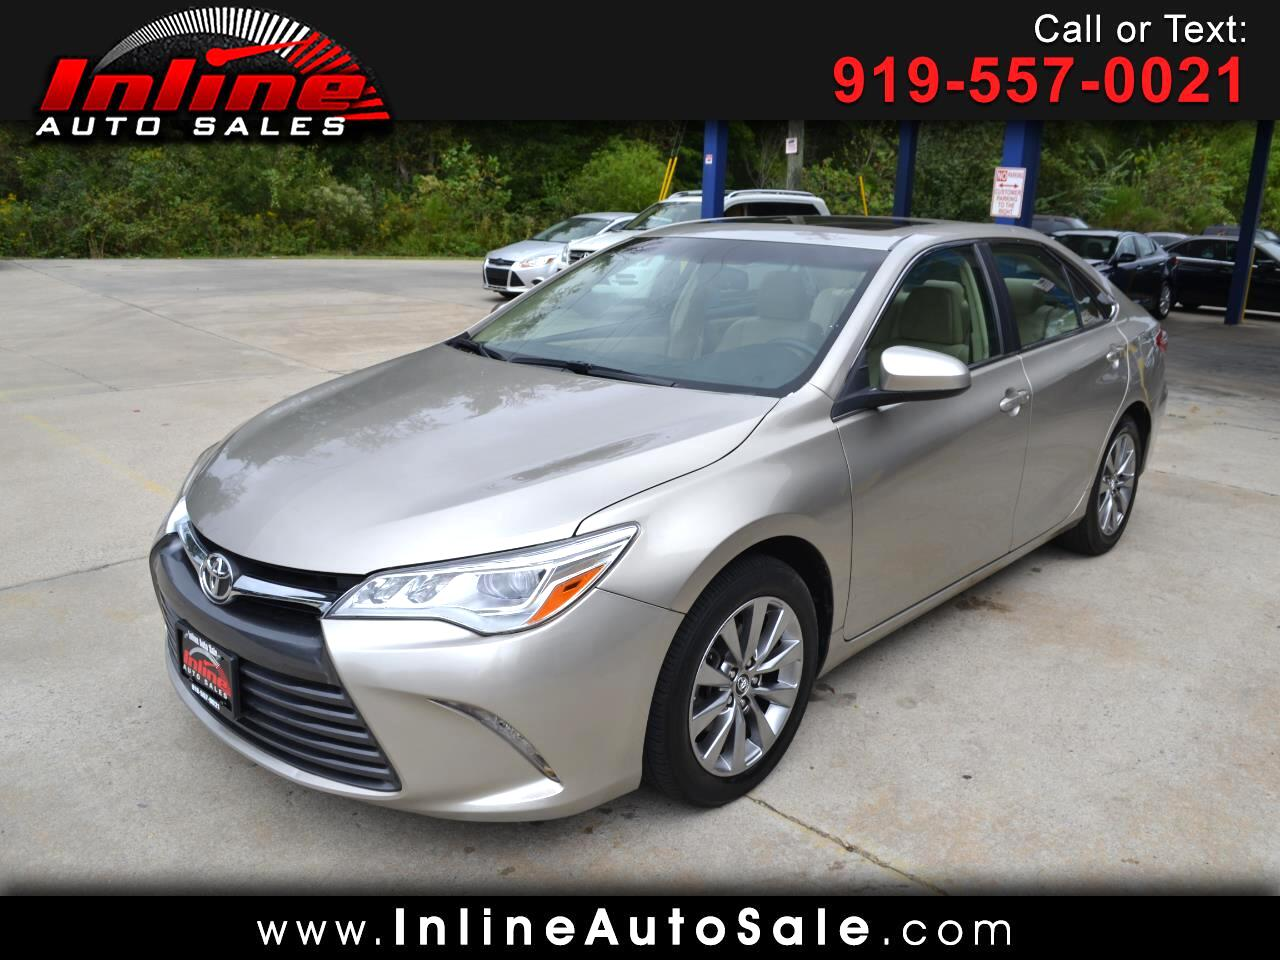 2016 Toyota Camry 4dr Sdn V6 Auto XLE (Natl)